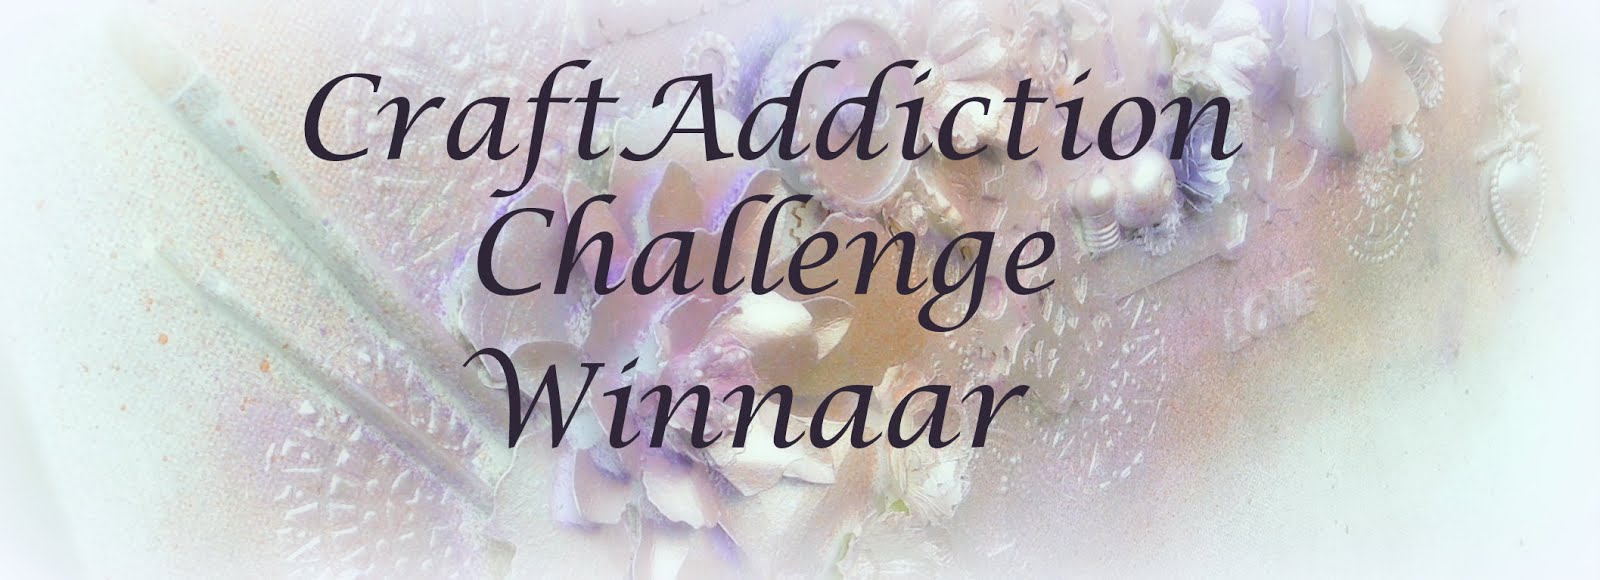 Winnaar challenge Herfst bij Craft Addiction